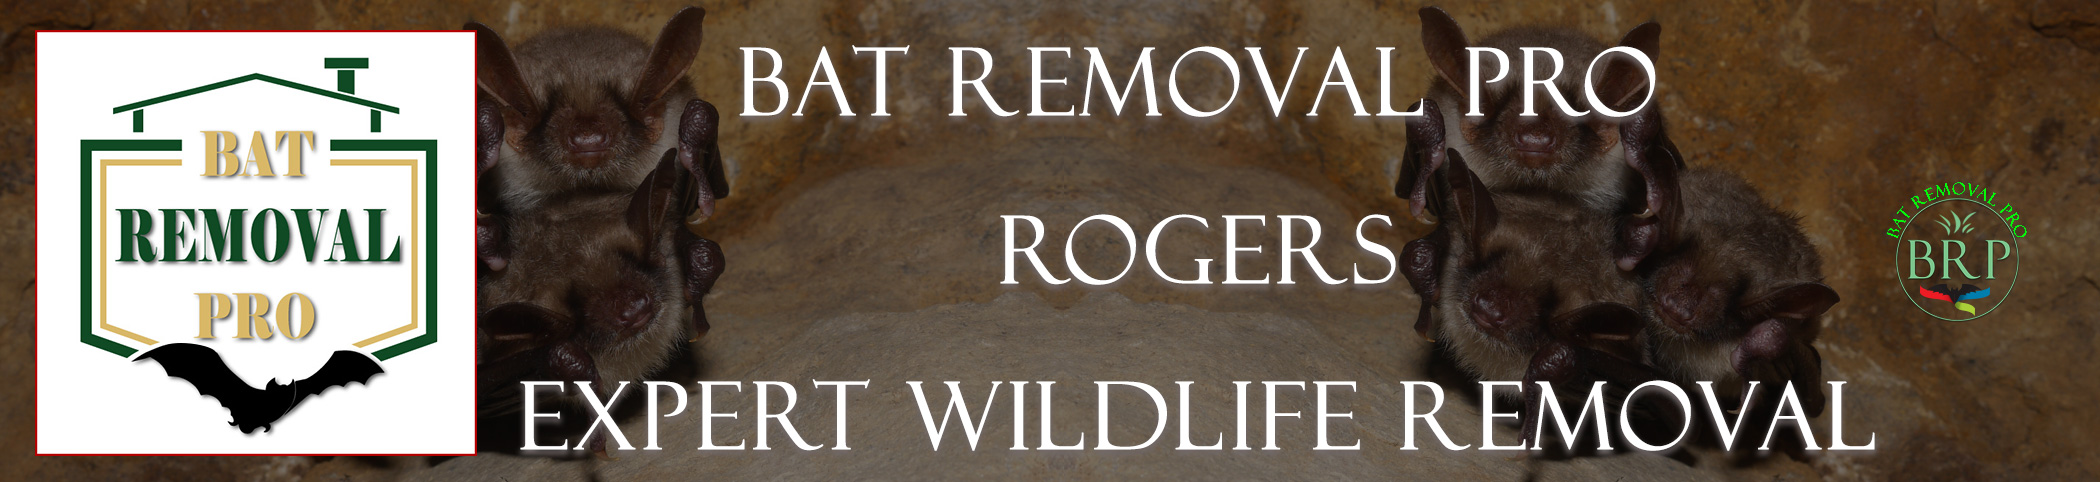 PAGE FOR RENT IMAGE AT BAT REMOVAL PRO